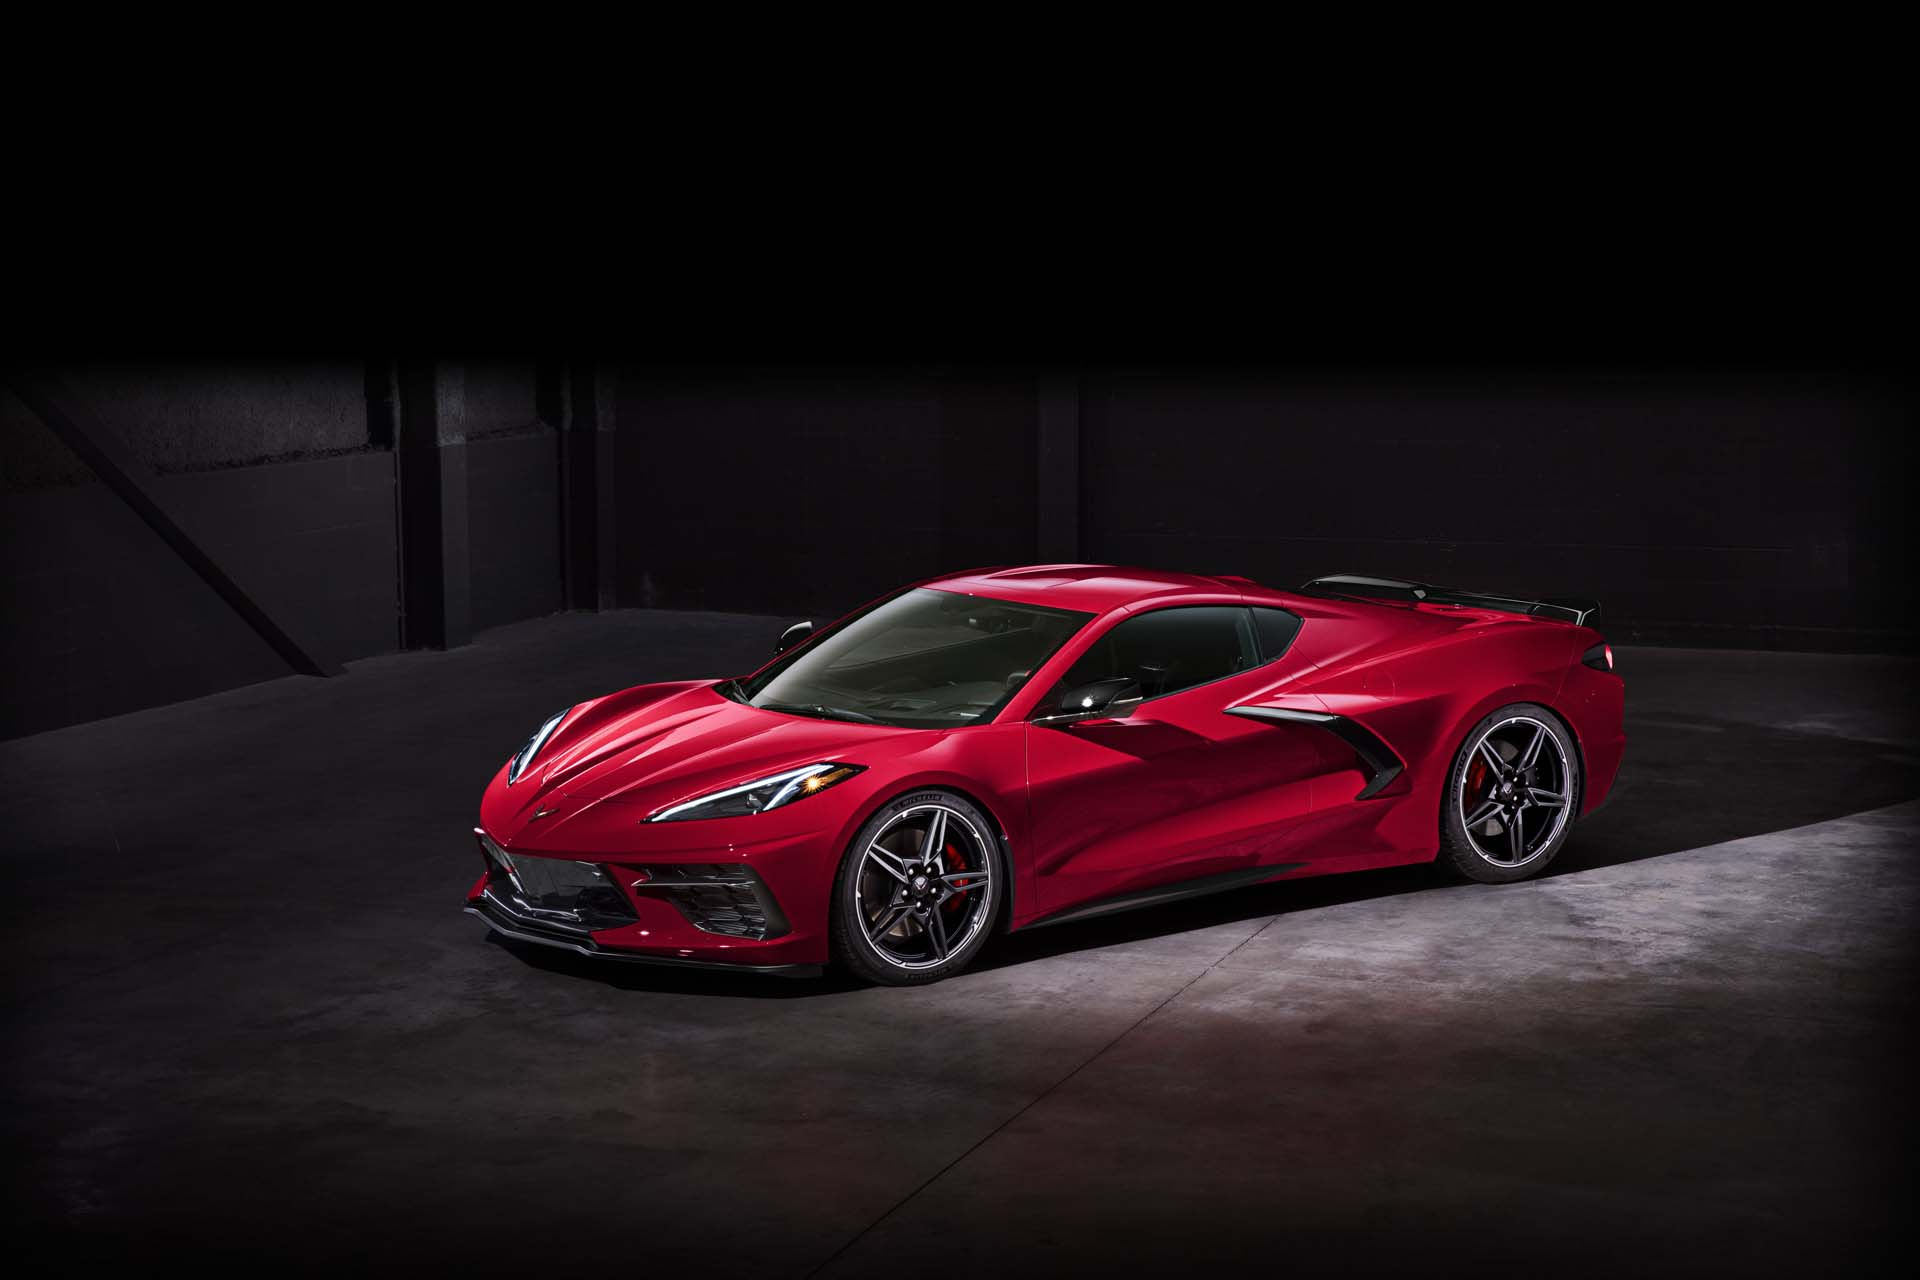 88 The Best 2020 Corvette Z51 Exterior and Interior